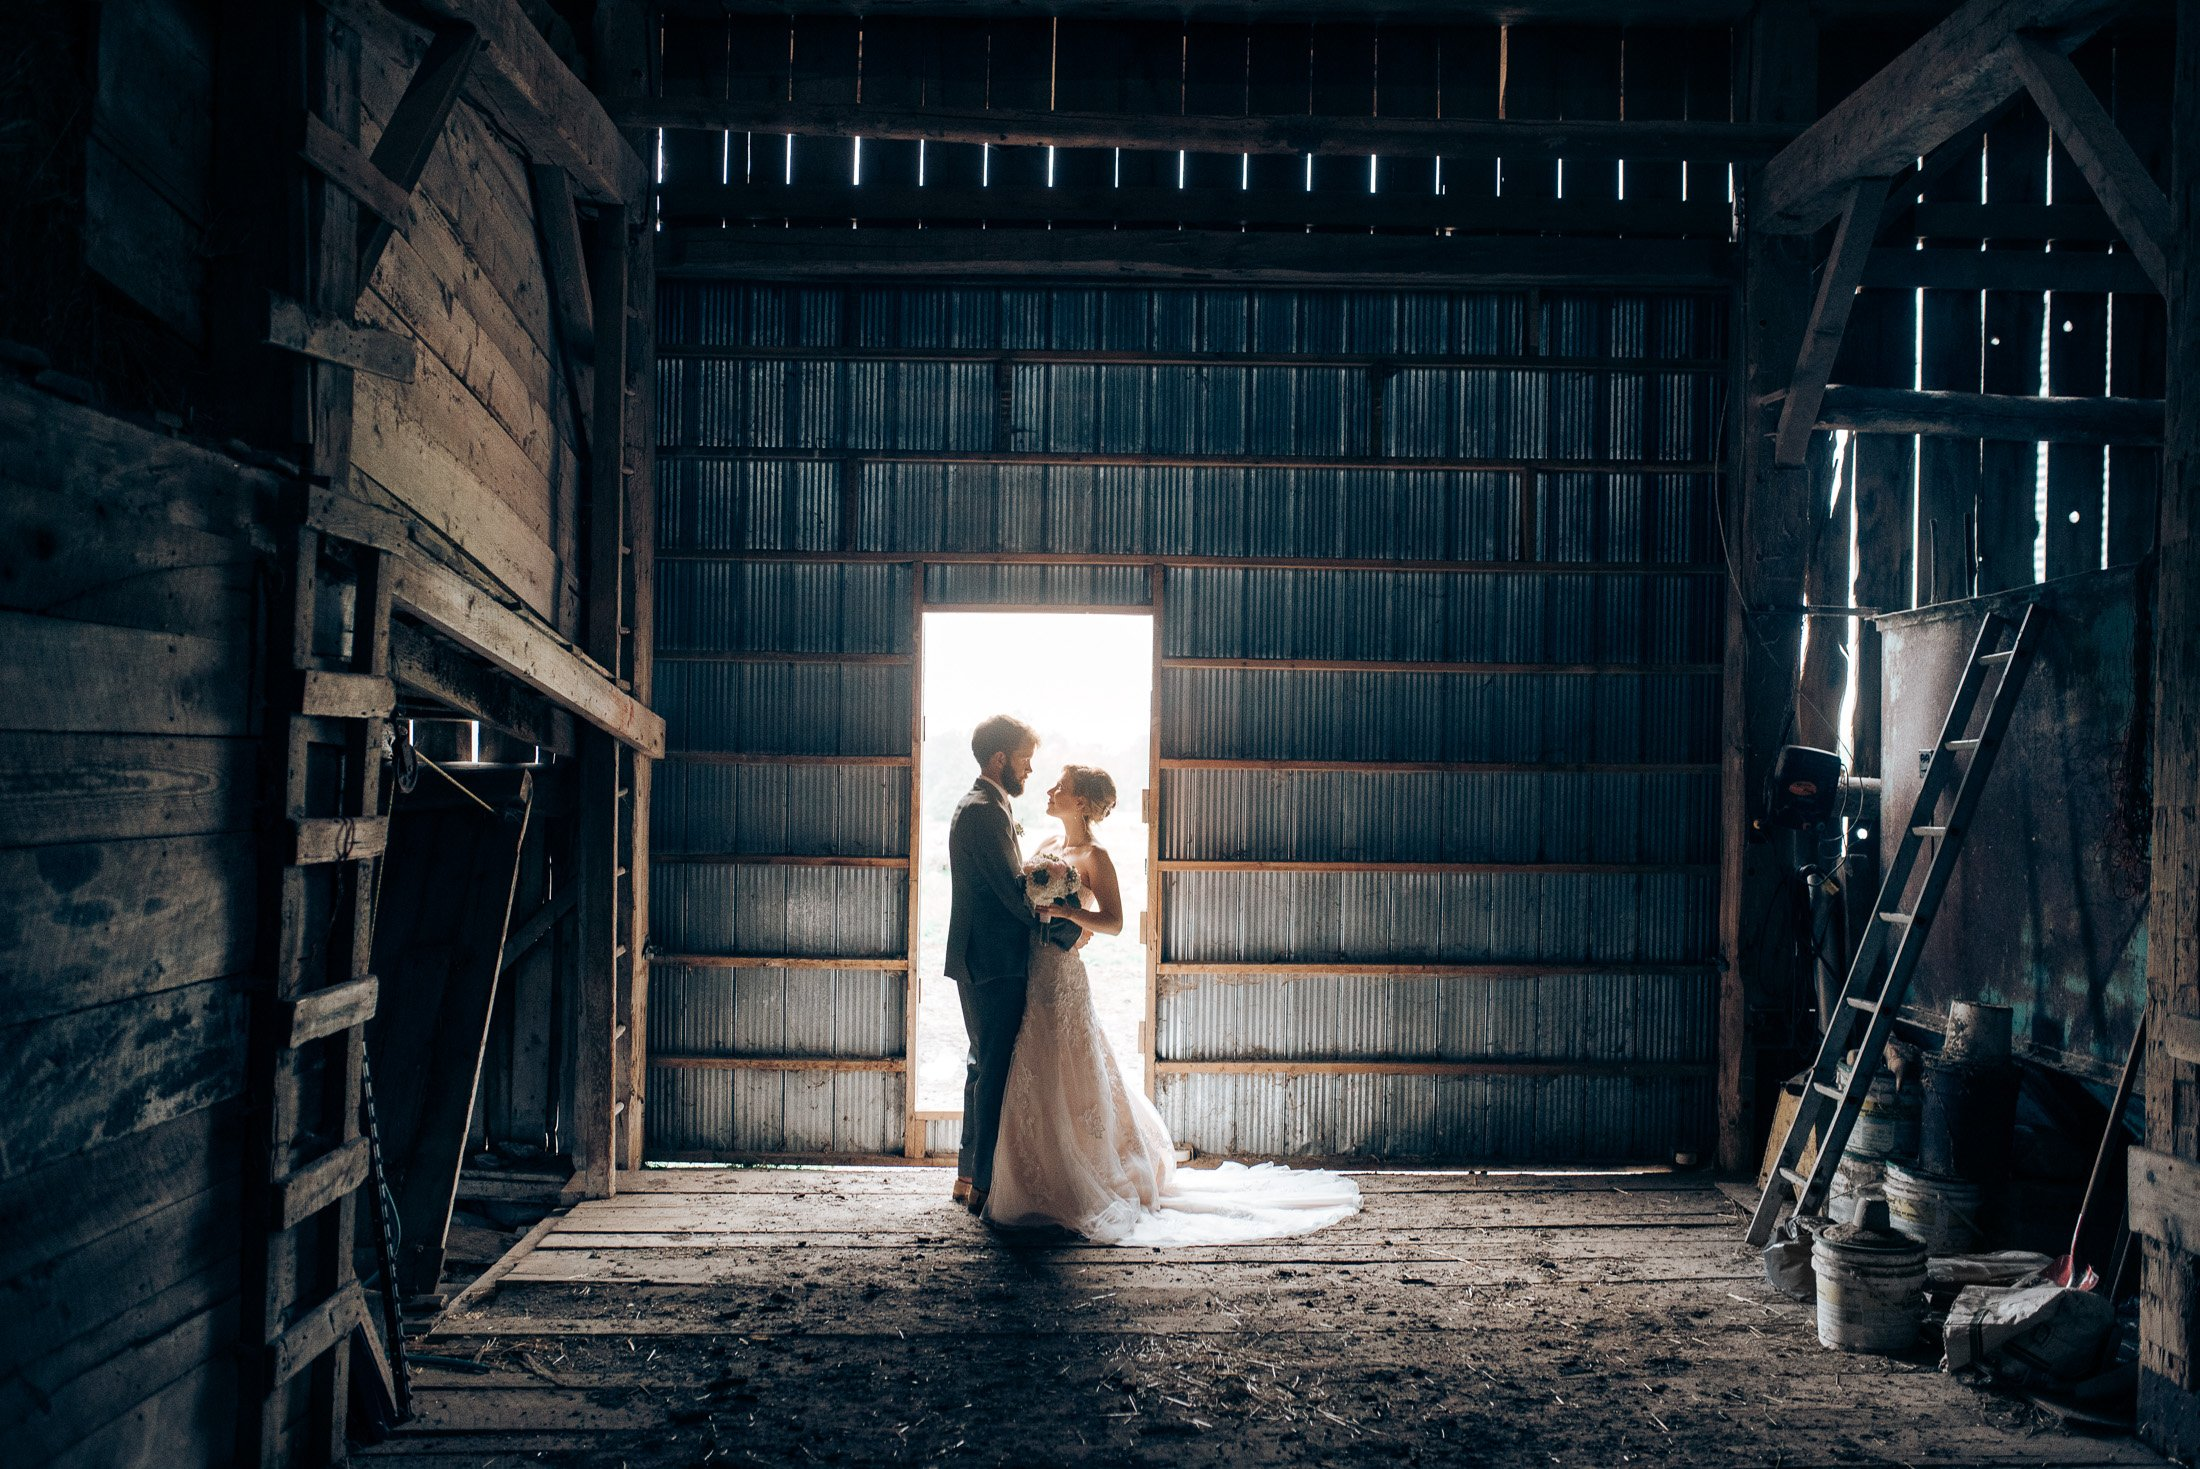 018 - barn wedding photos